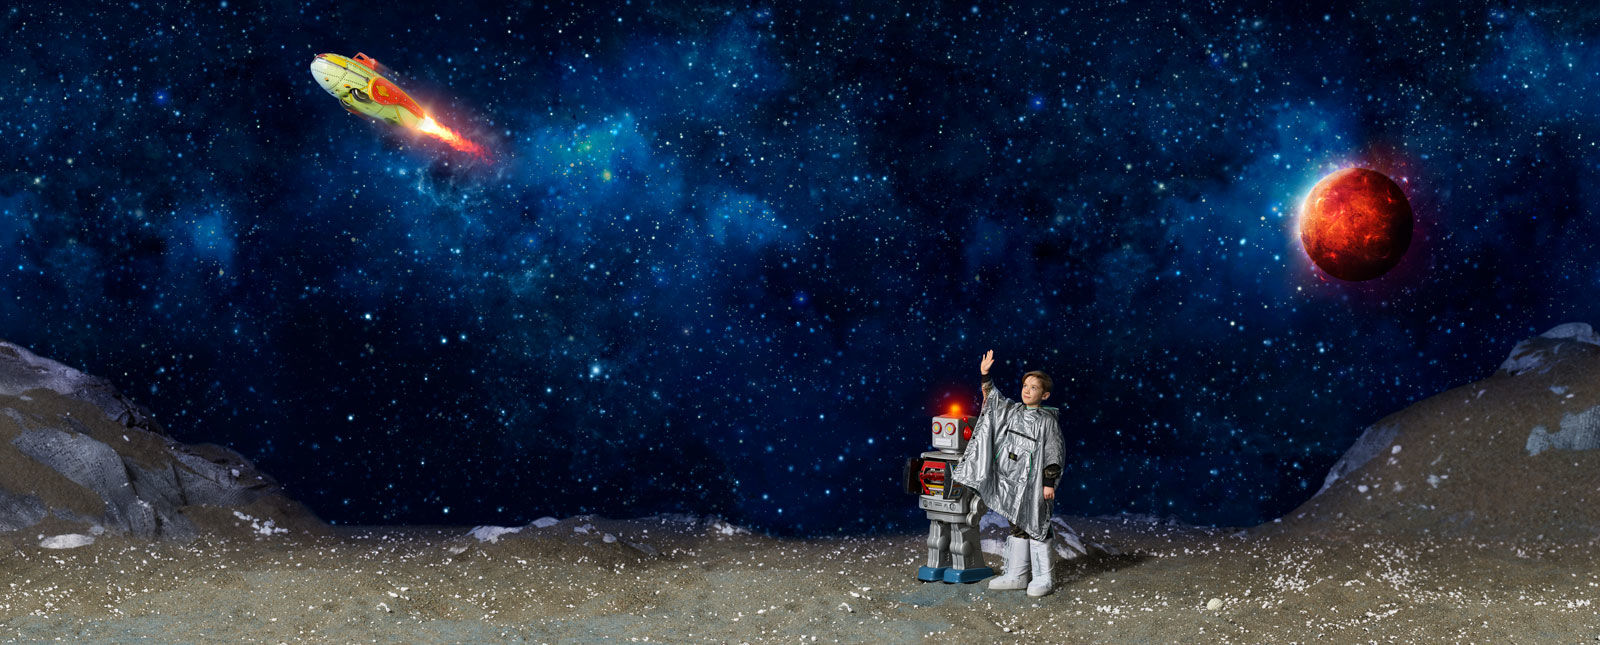 Faraway planet landscape with robot next to junior model wearing silver anorak and space boots waving at passing spaceship.